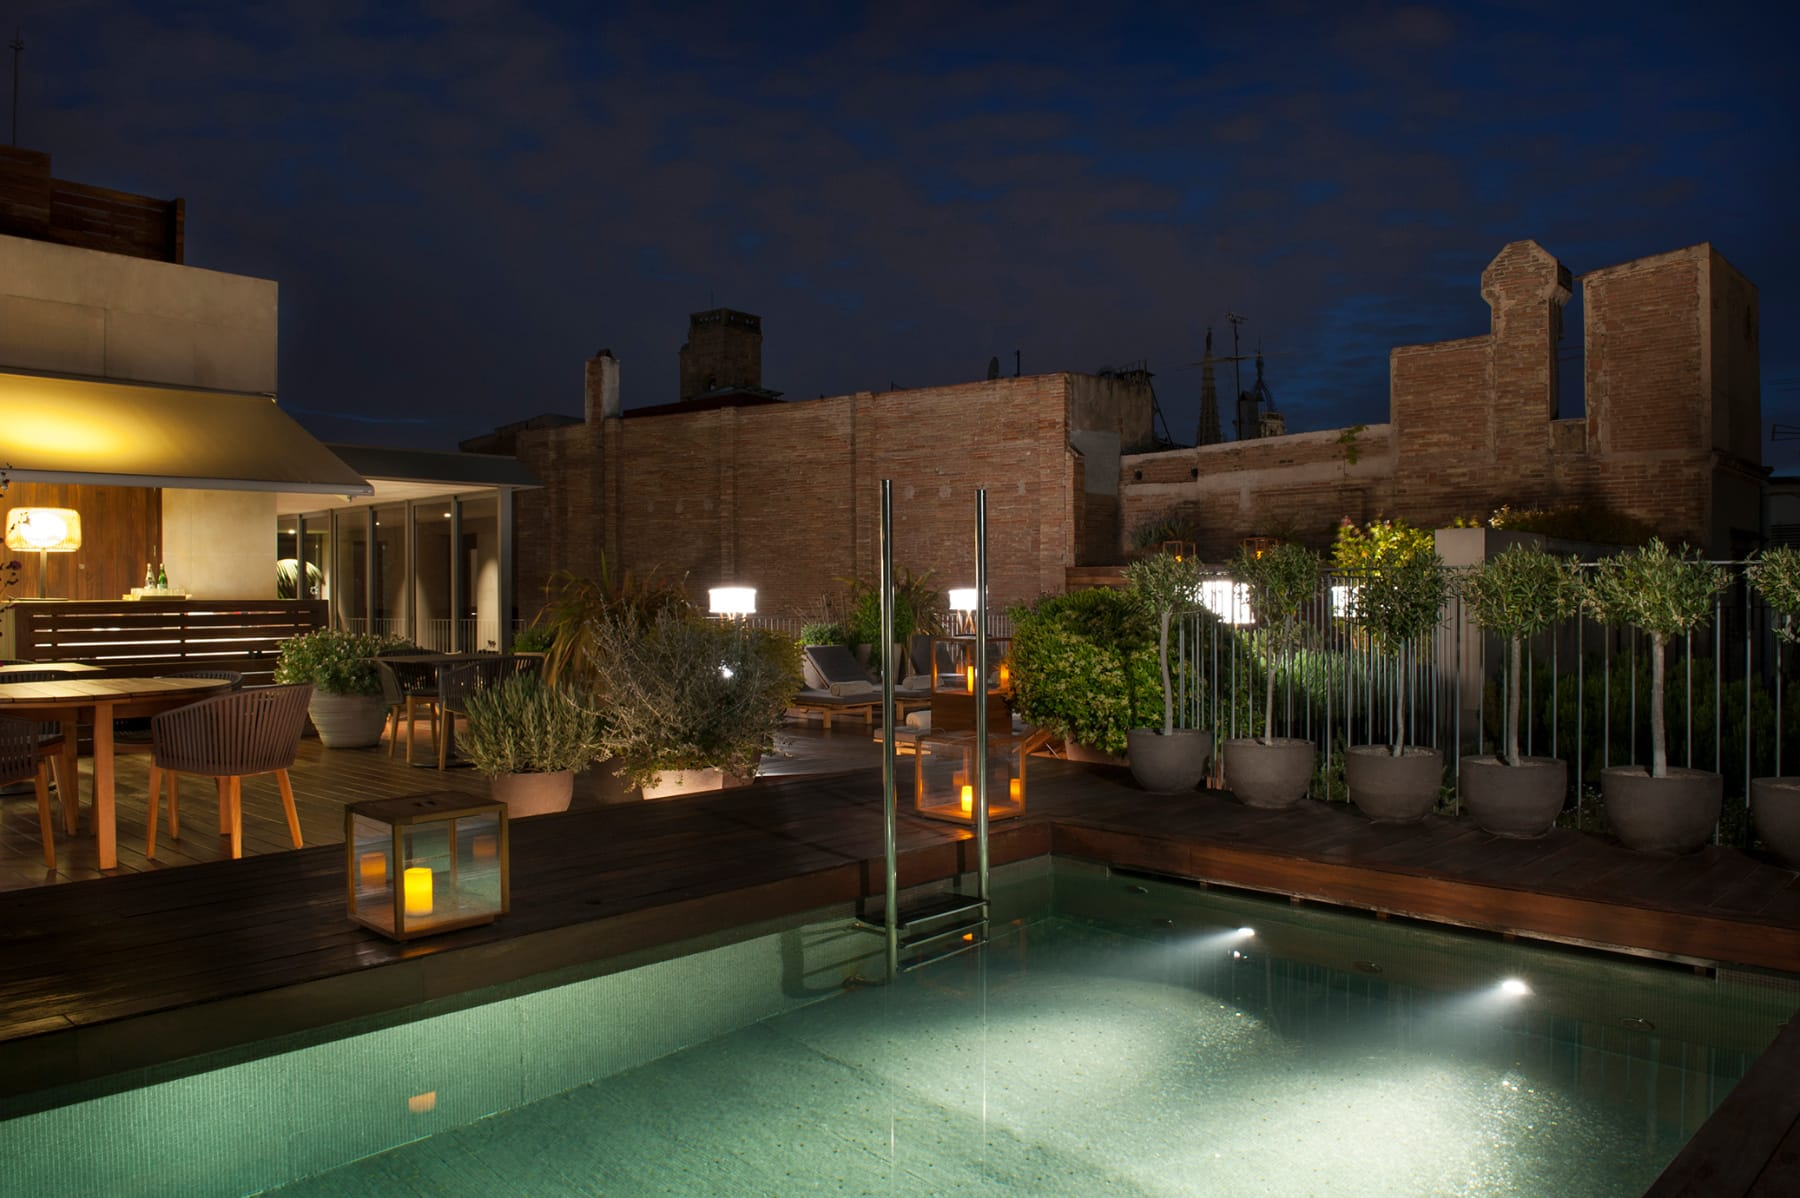 Terrasse h tel de luxe barcelone h tels 5 toiles for Hoteles raros barcelona